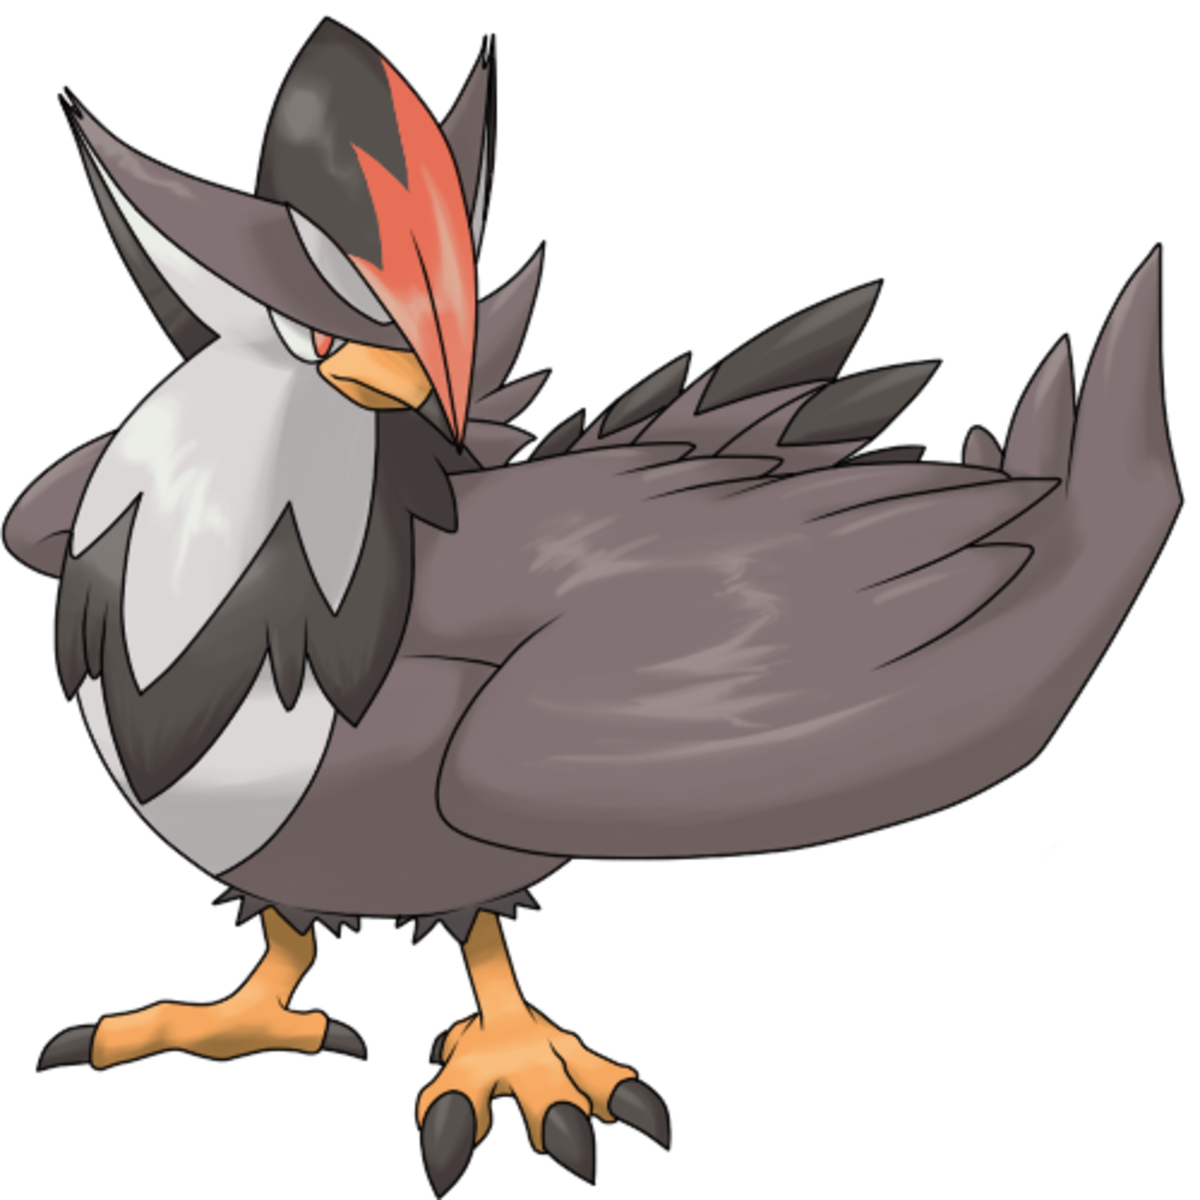 Pokémon of the Week - Staraptor - Serebii.net